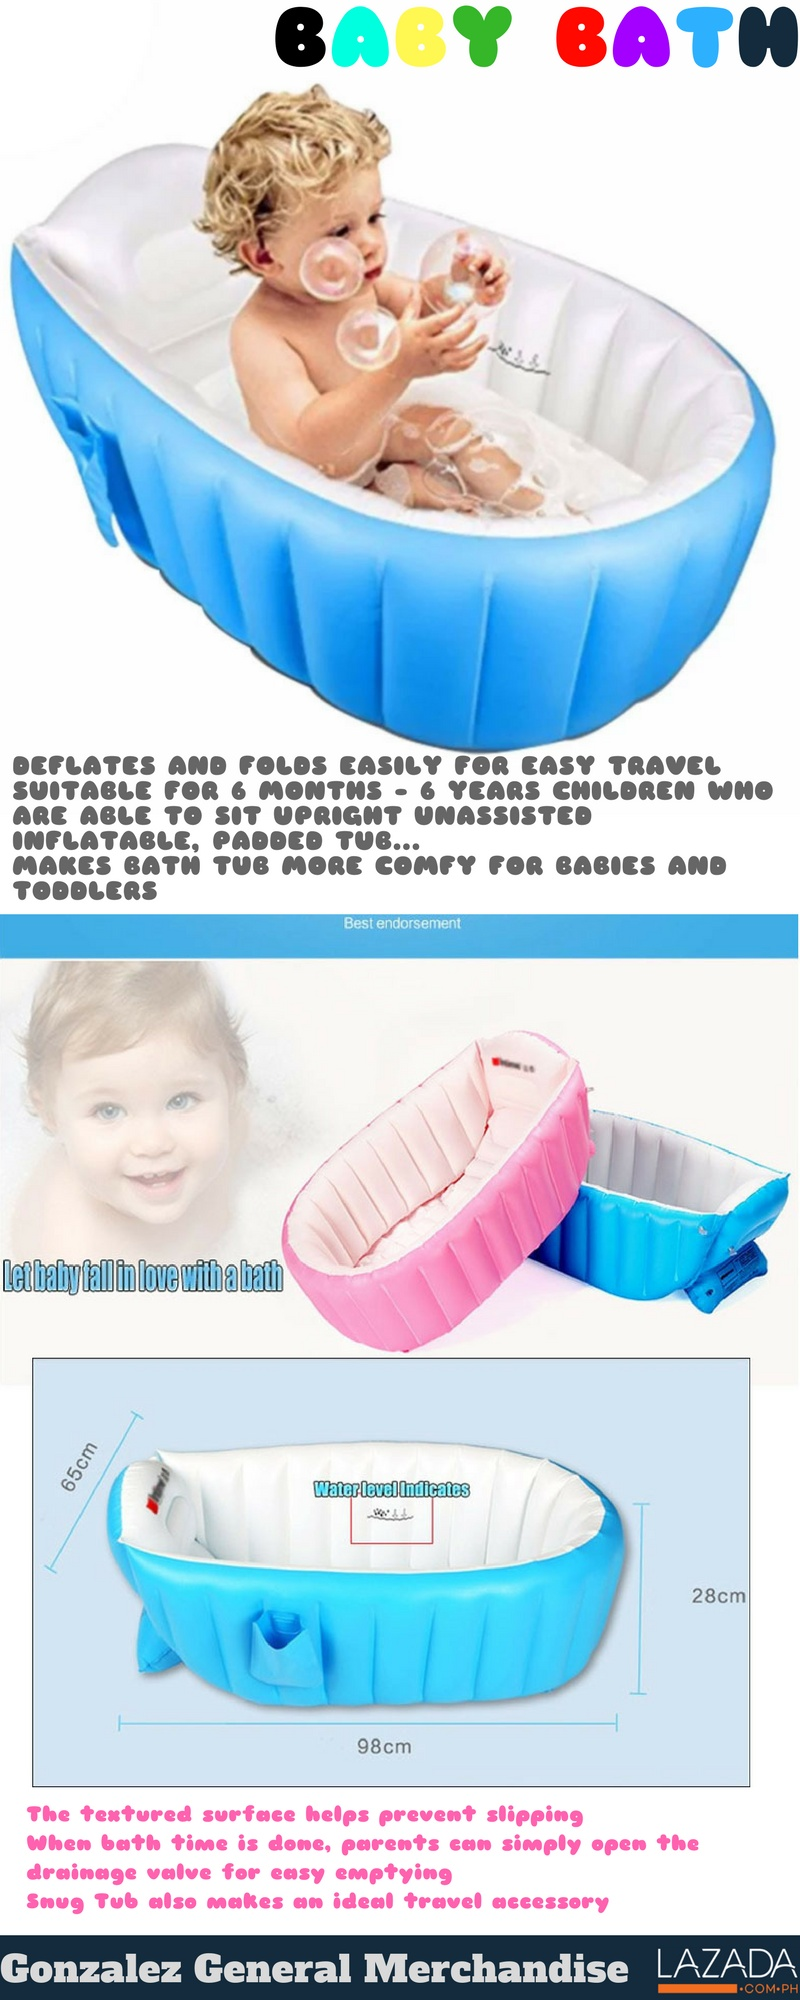 YT-226A Inflatable Baby Bath Tub (Blue) | Lazada PH